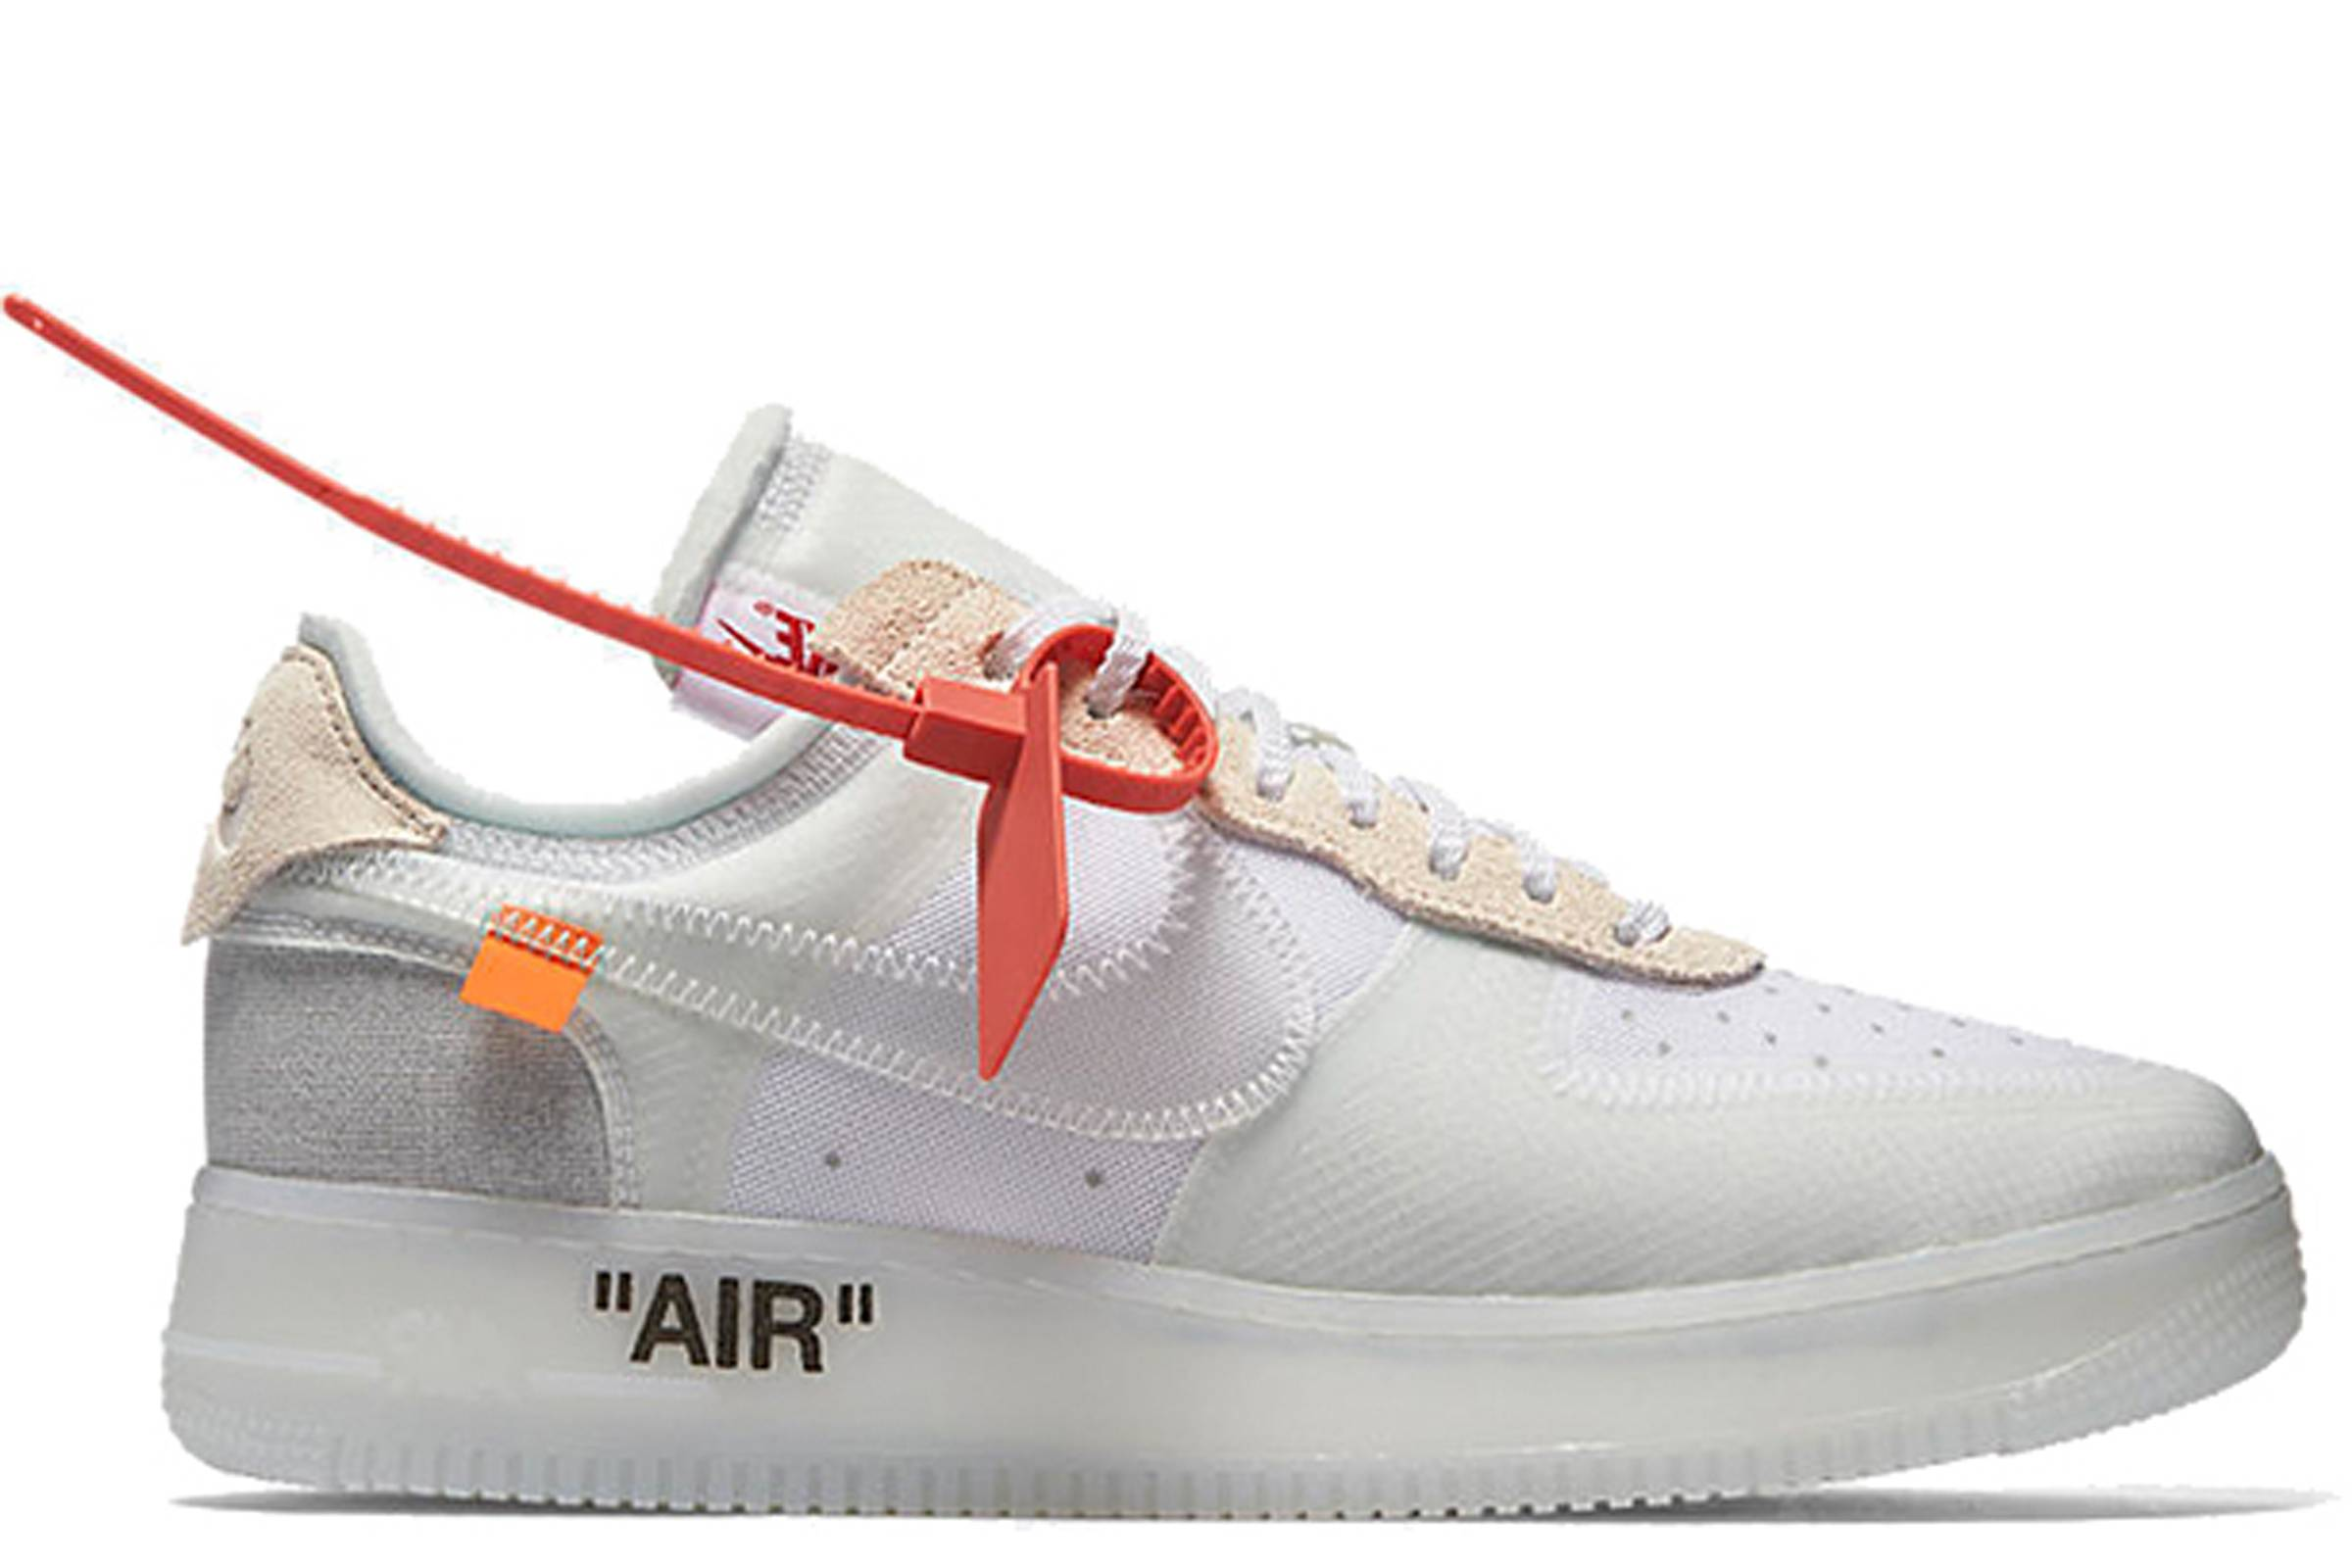 sale retailer 439c2 b20df ... promo code for off white x nike air force 1 caadf 1e5a3